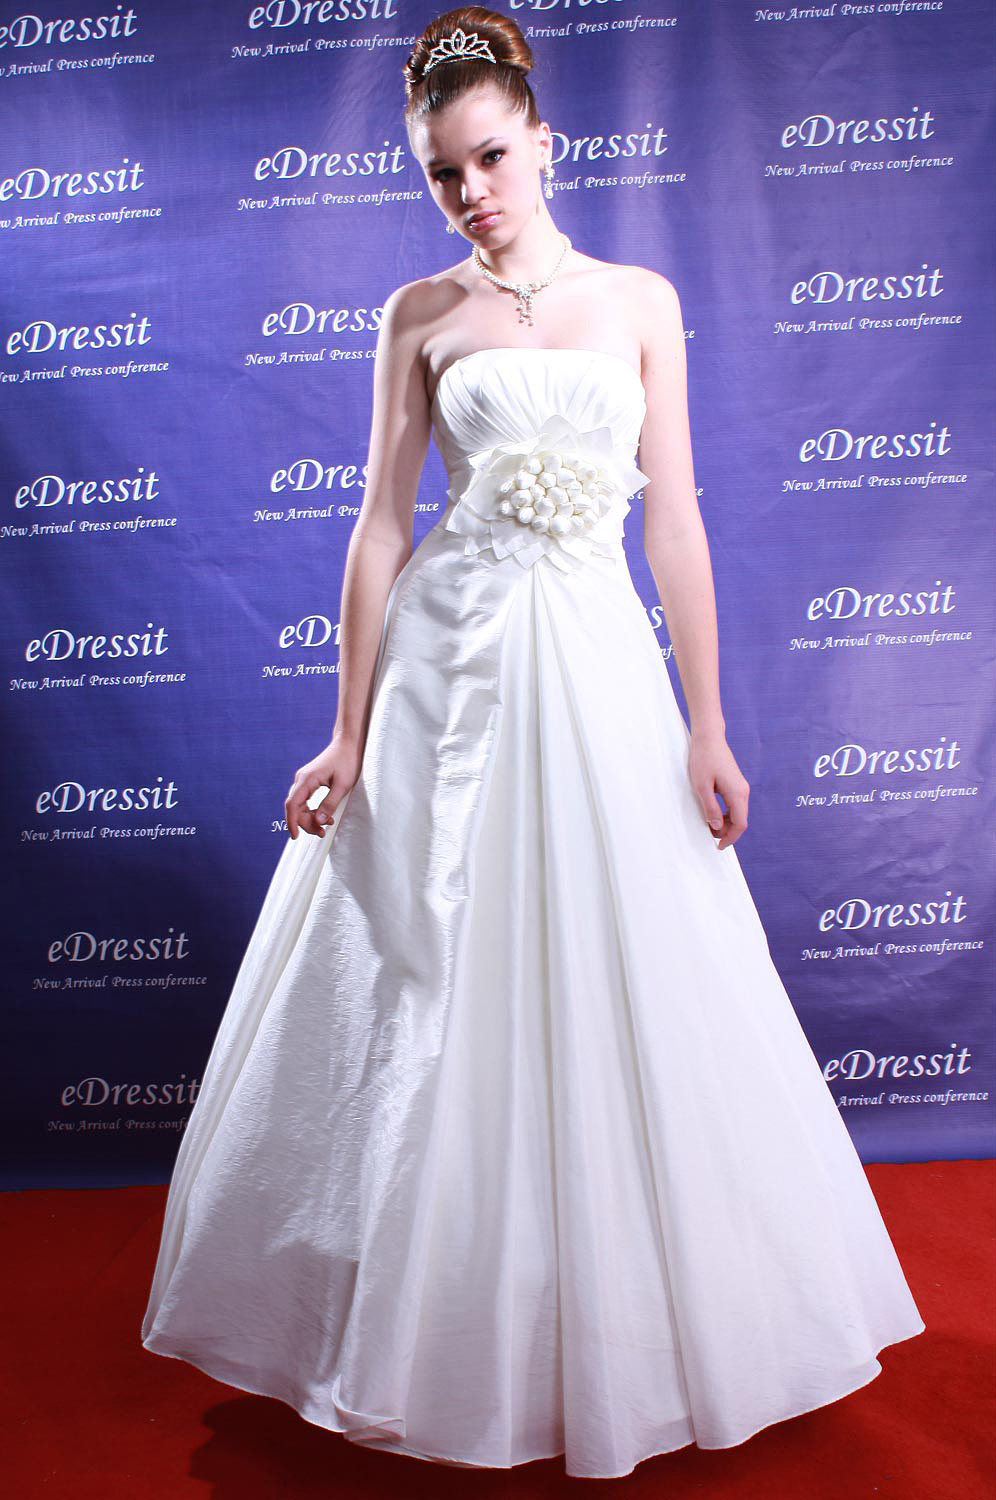 eDressit White Prom Gown Evening Wedding Dress (01080307)